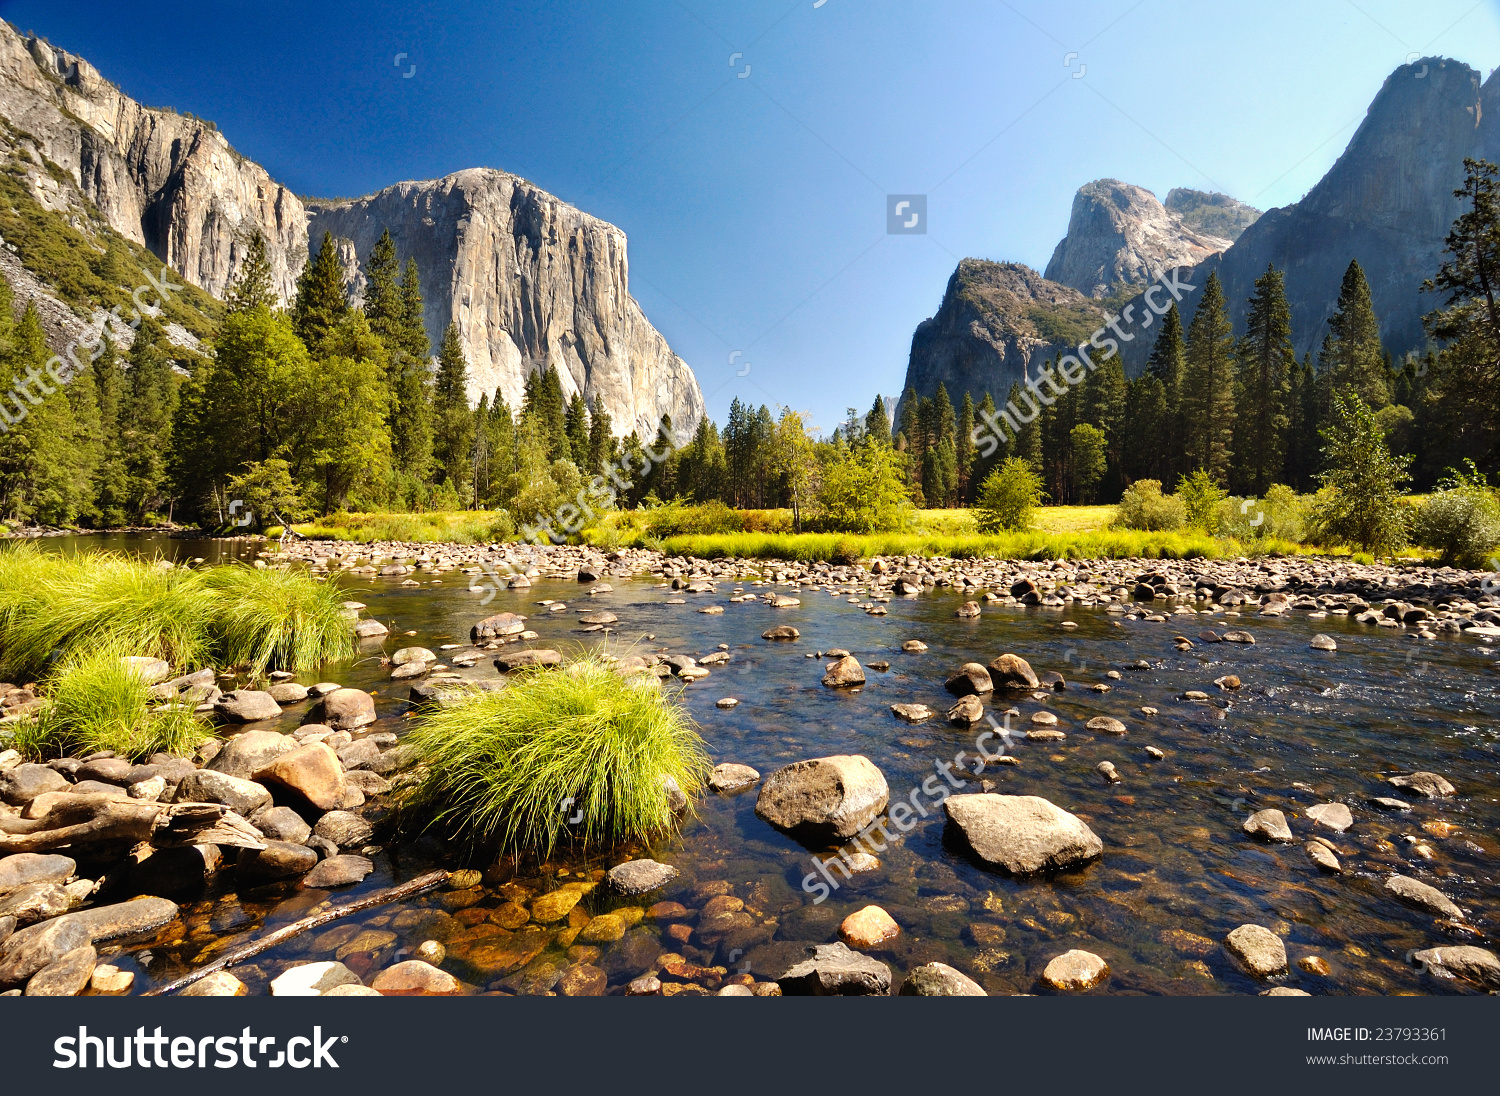 Merced River clipart #4, Download drawings